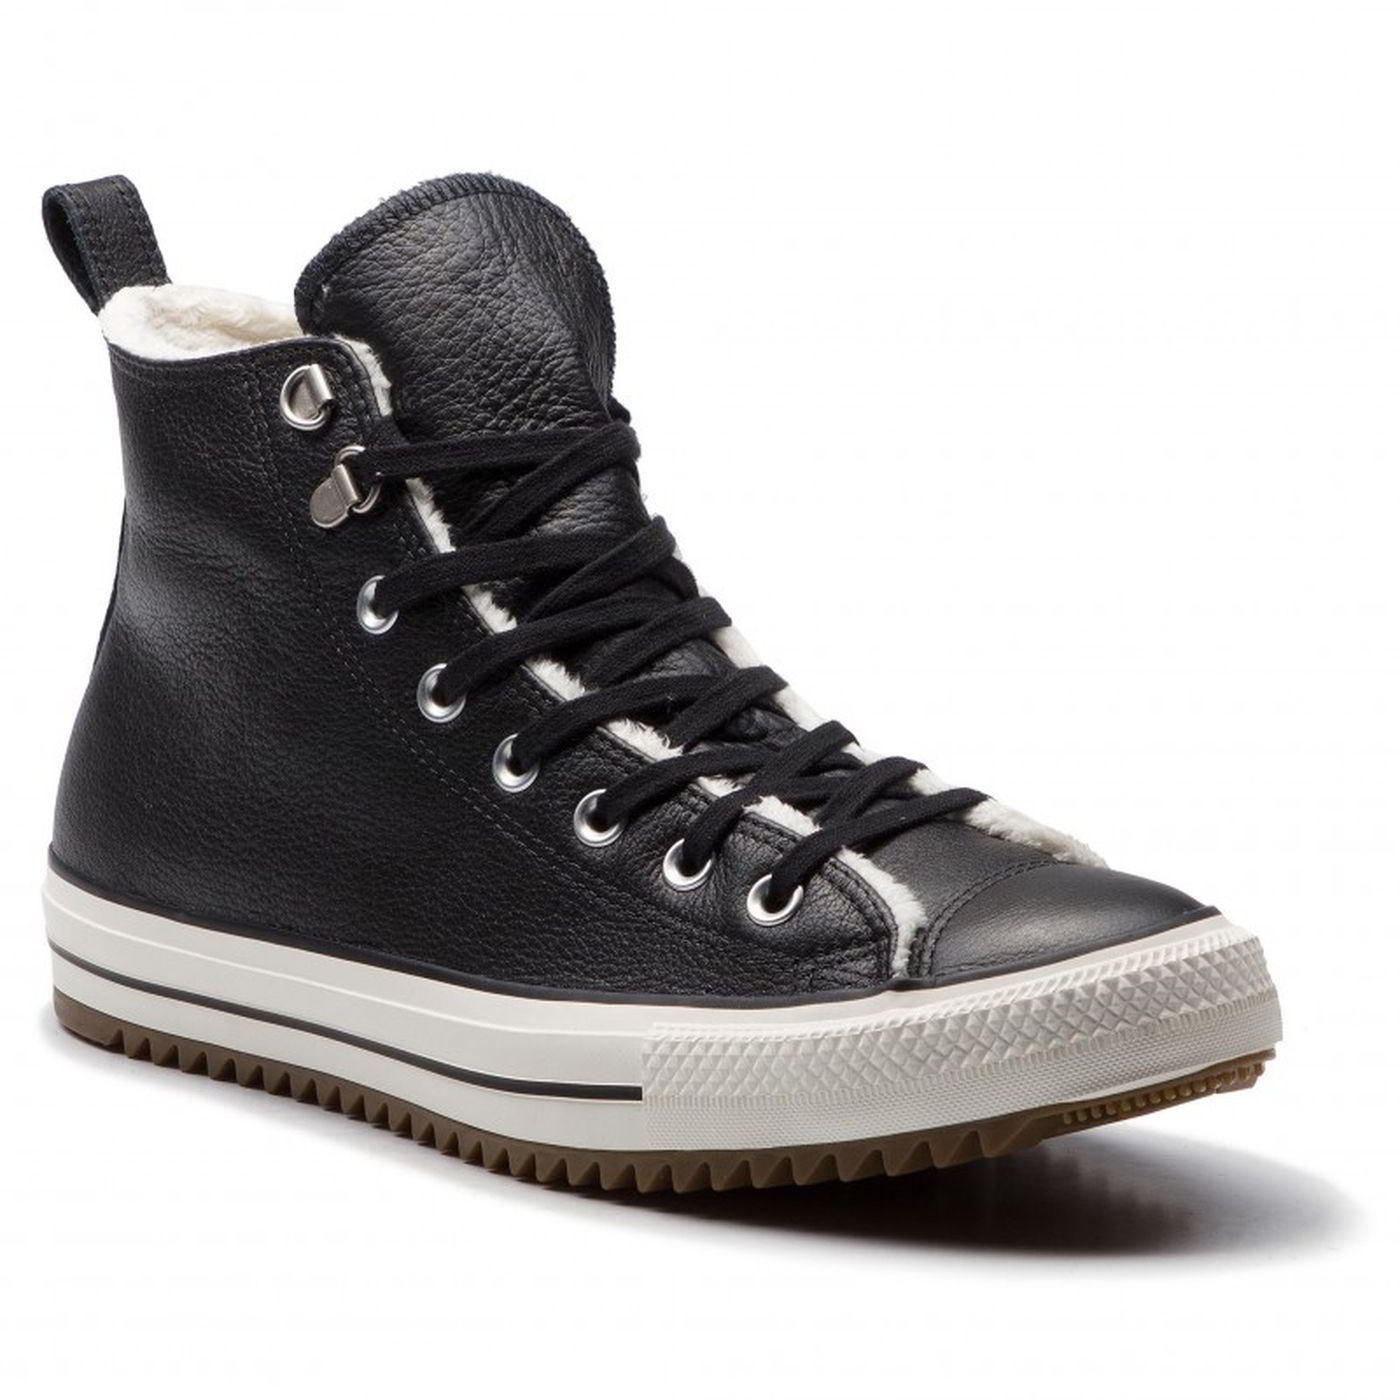 8d4af030d8812 Converse All Star Hiker Womens Ladies Leather Hi Top Boots Shoes ...